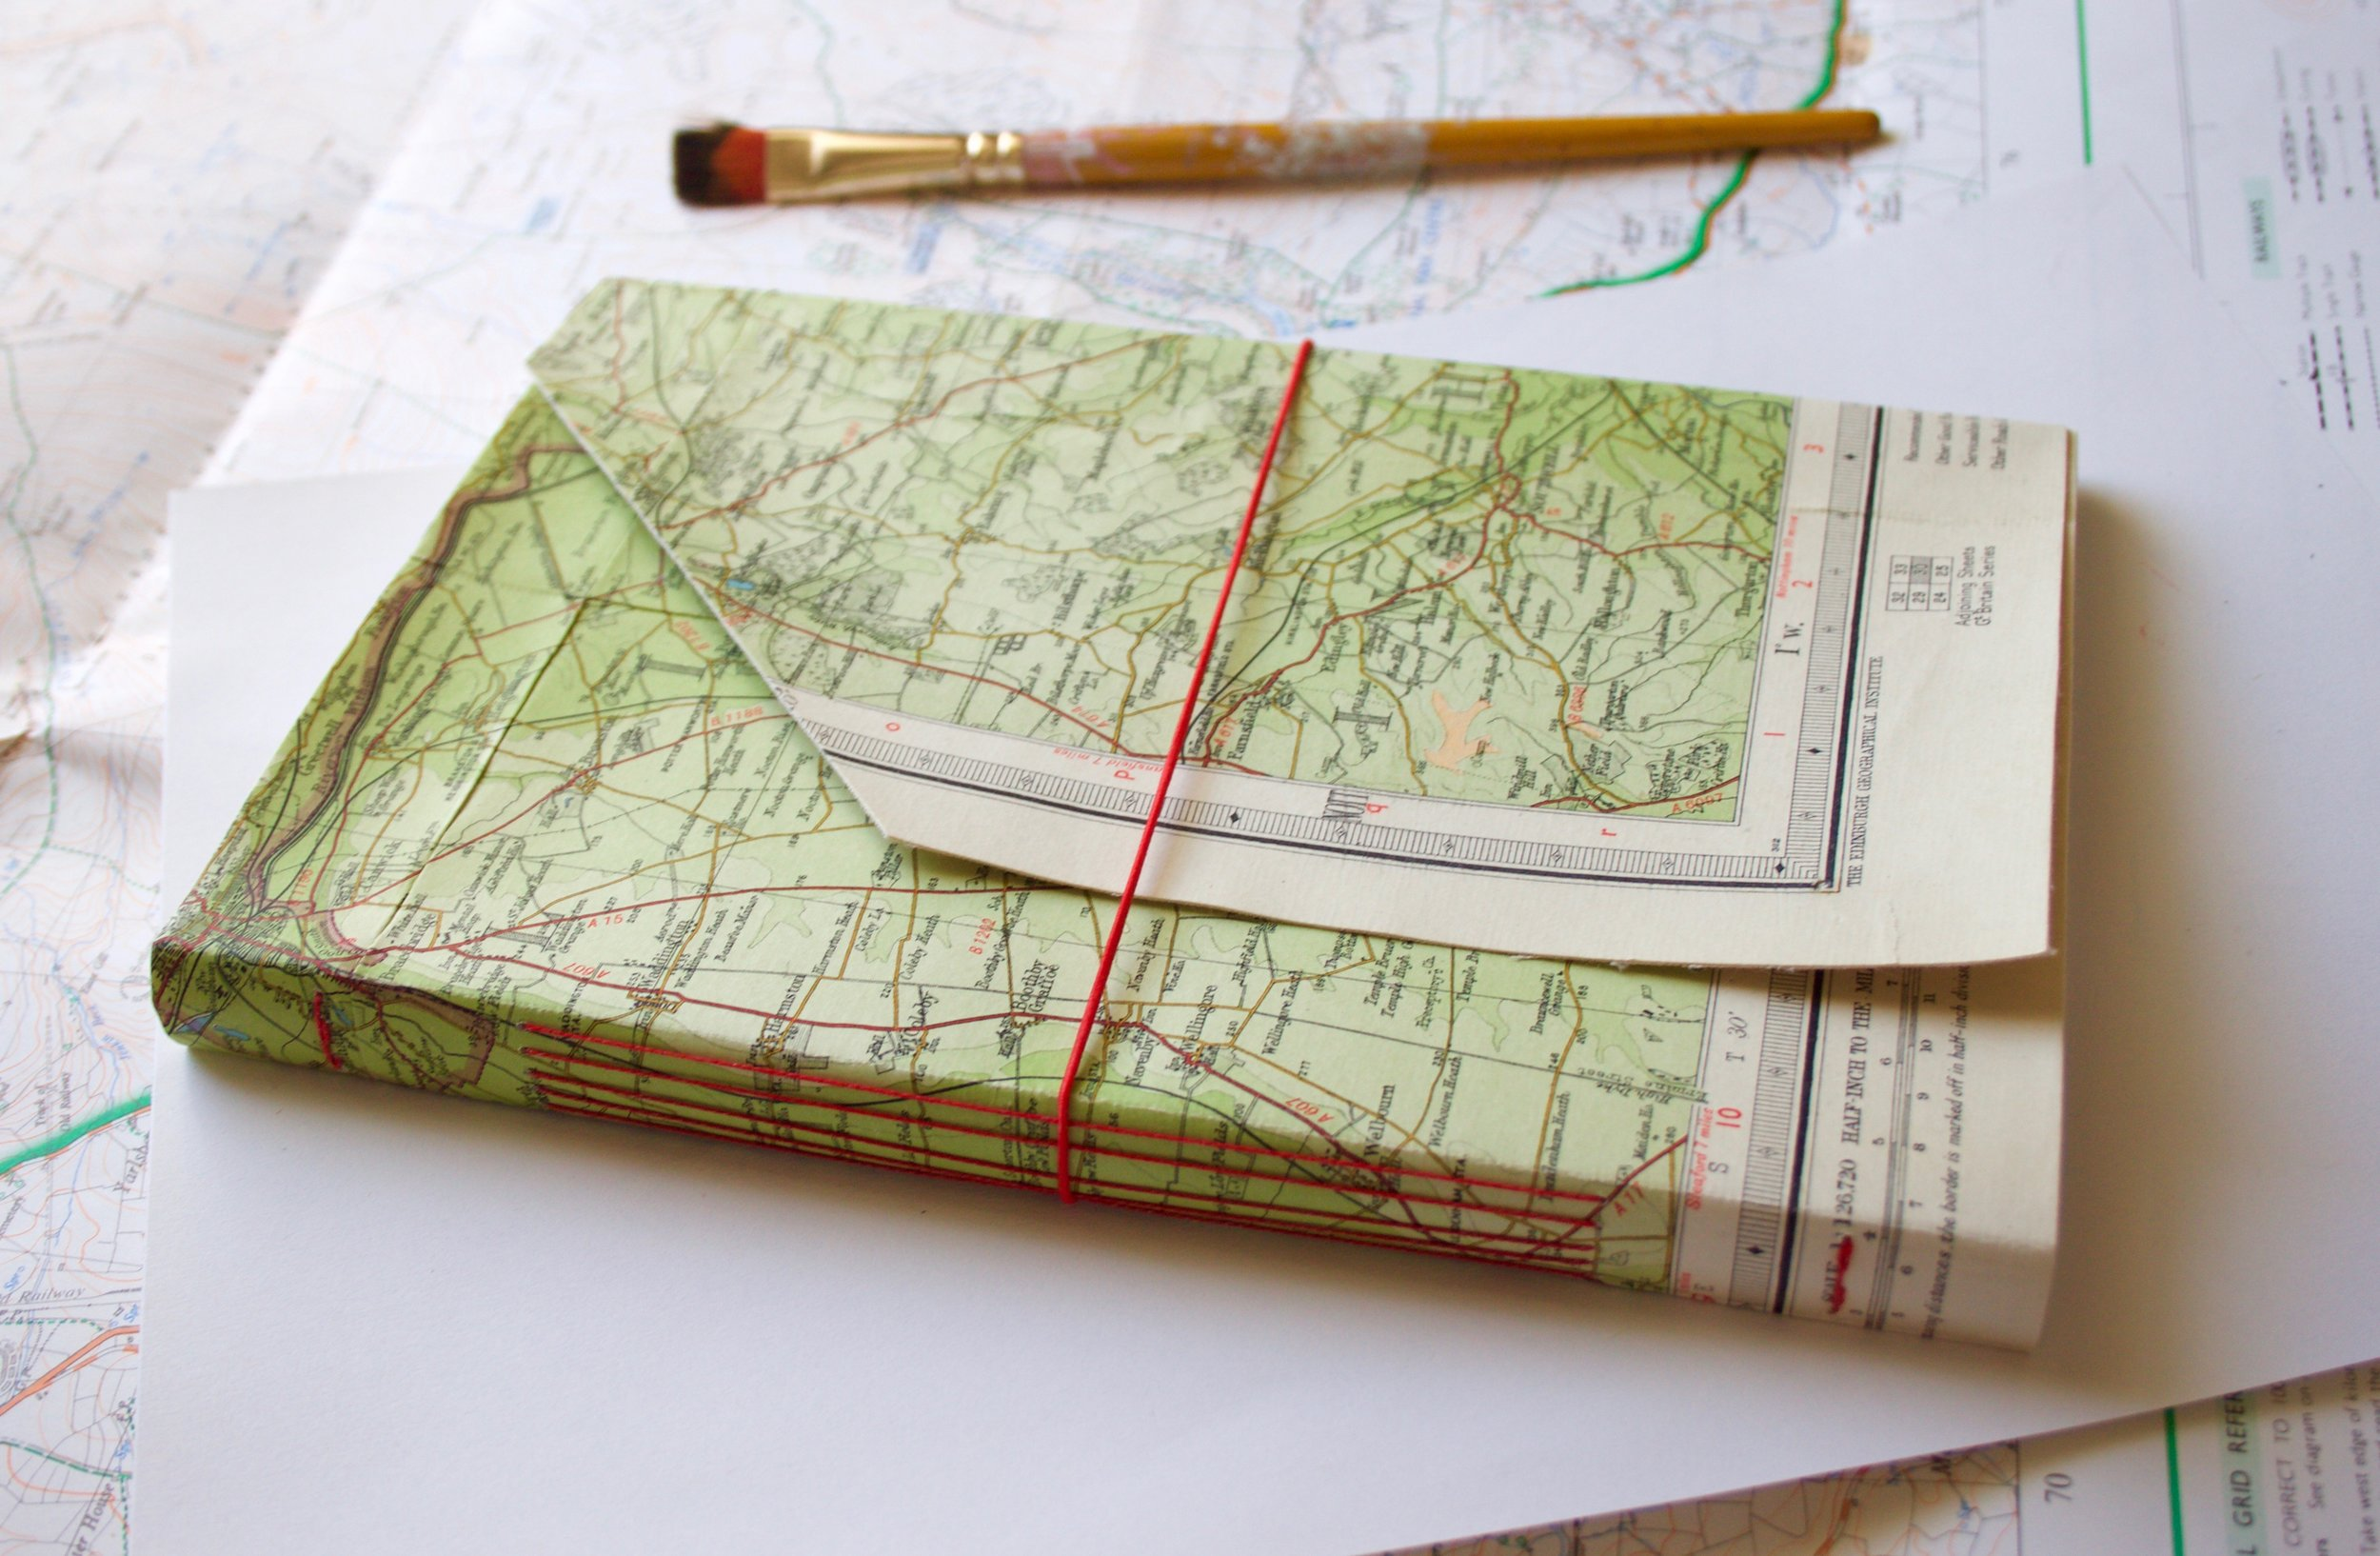 Long stitch Travel Journals - 28/9/19